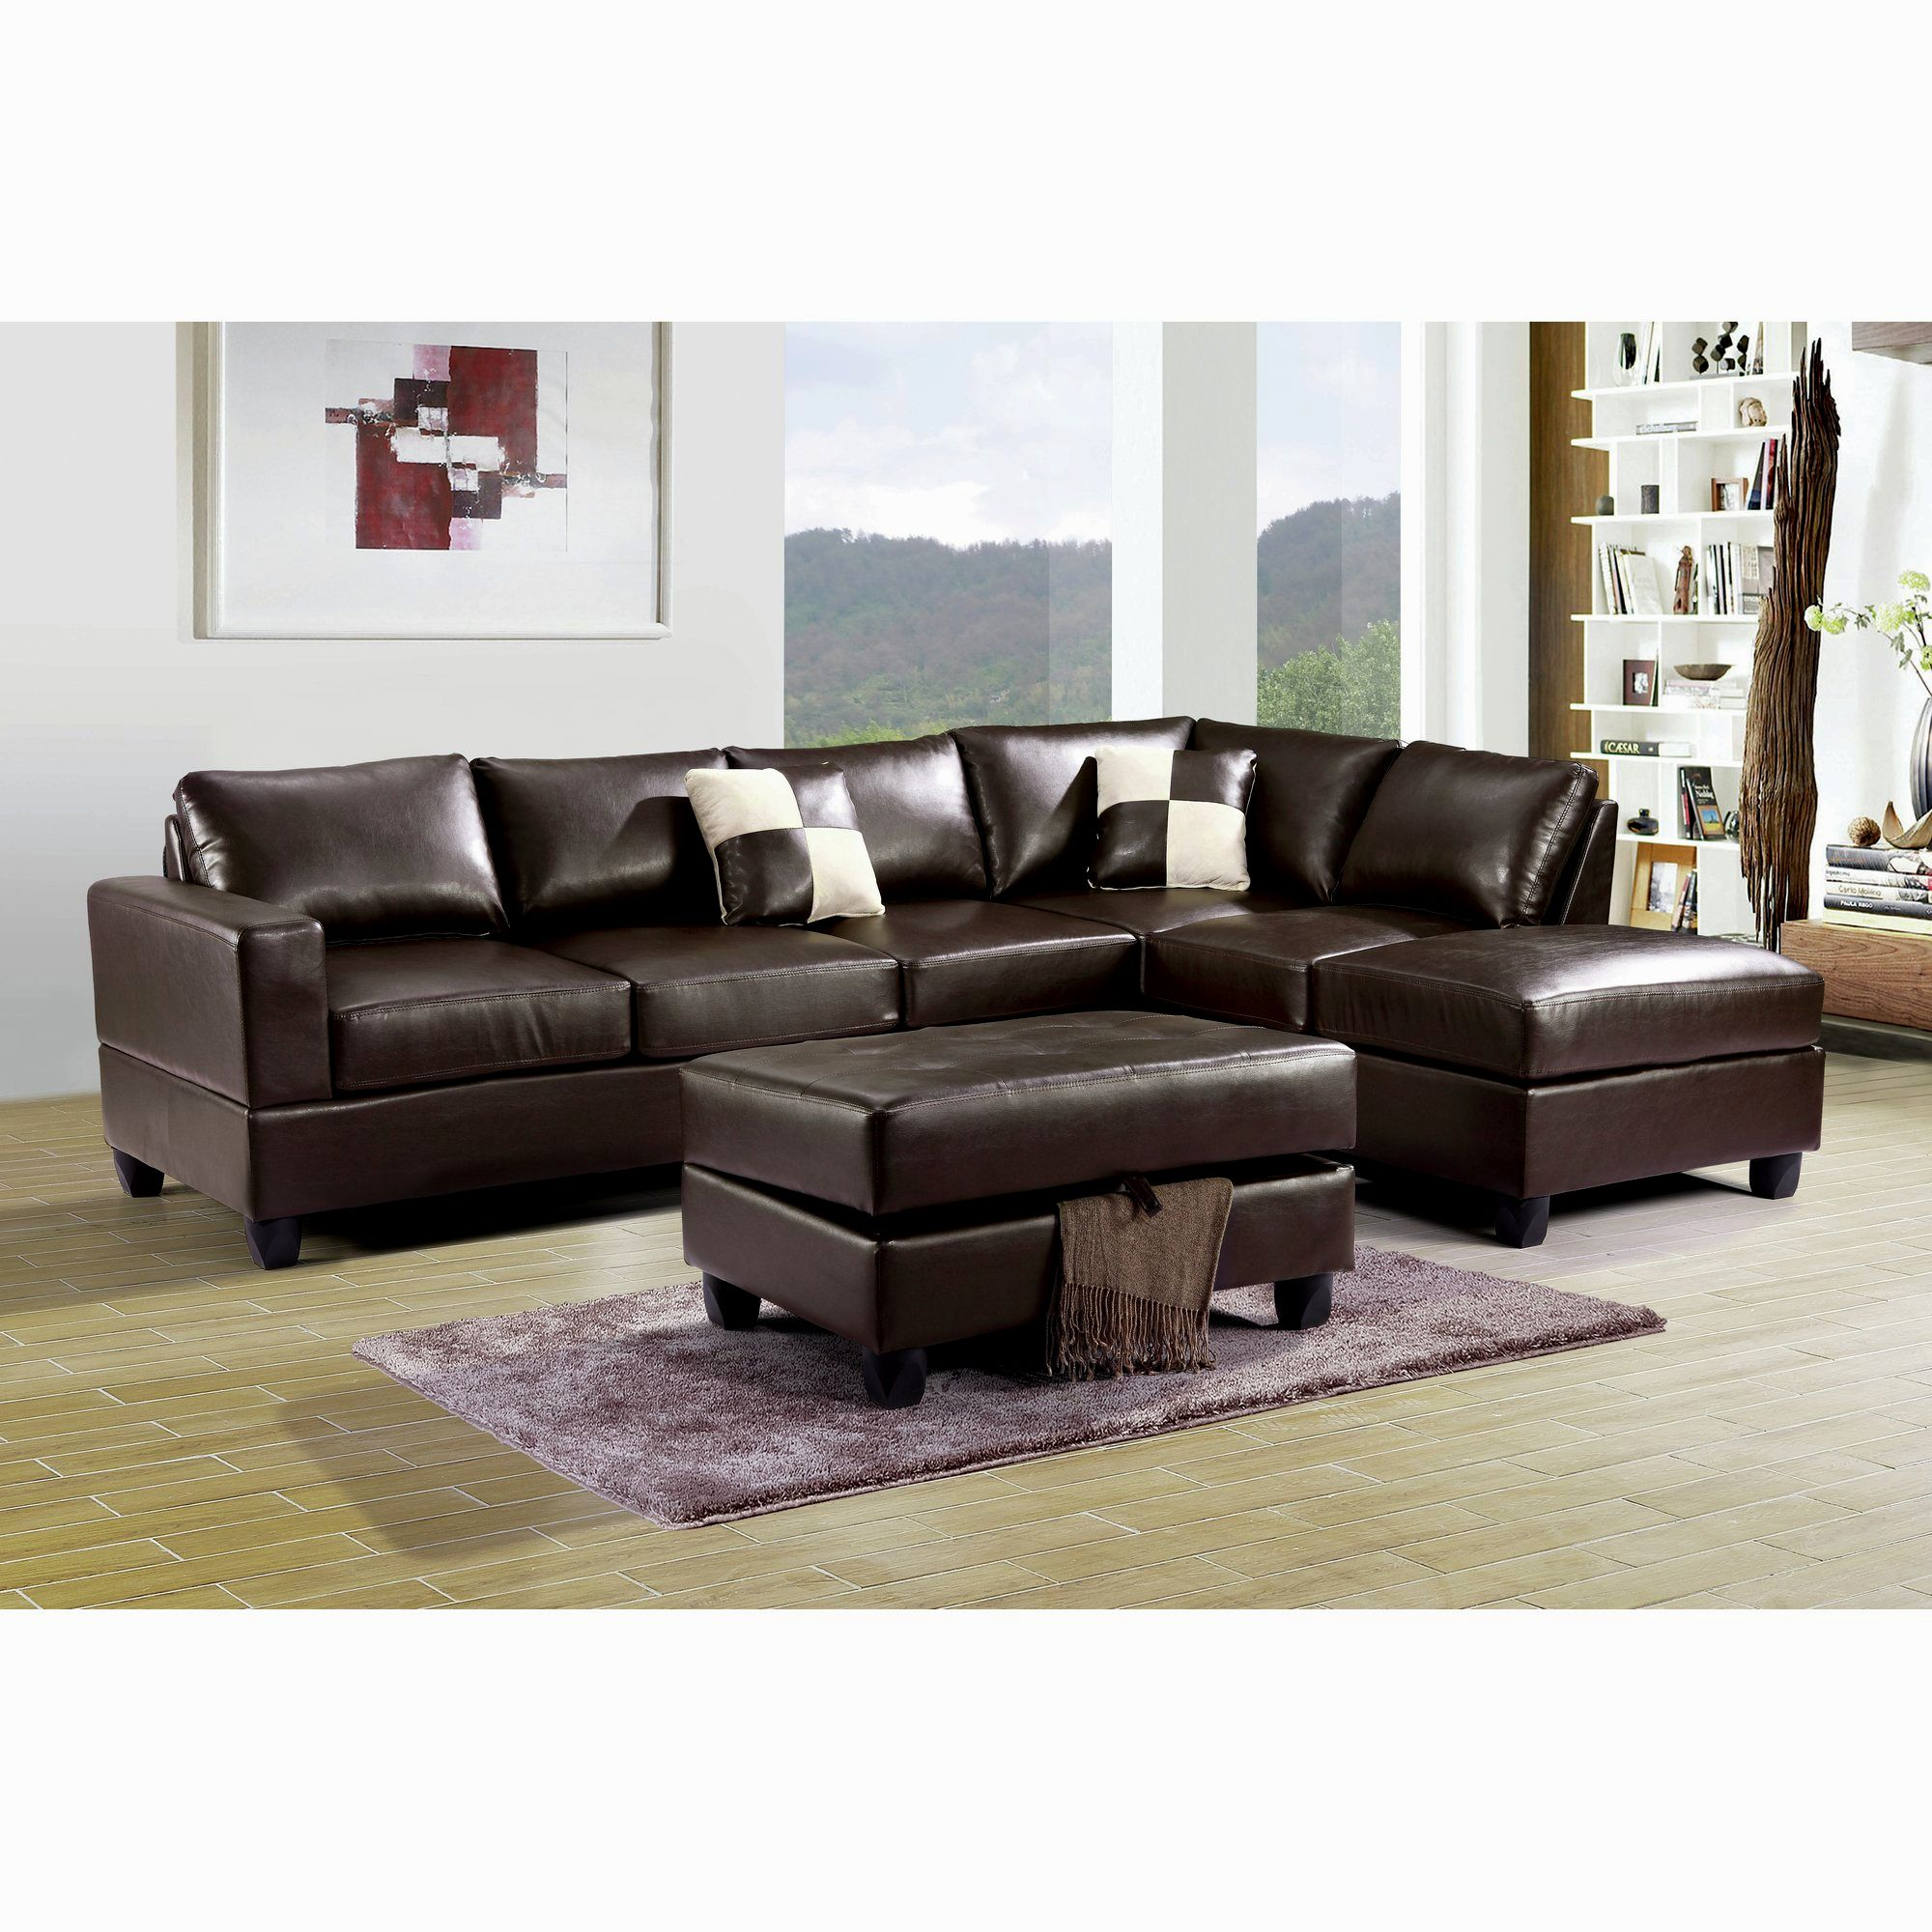 fresh raymour and flanigan sofa ideas-Beautiful Raymour and Flanigan sofa Portrait